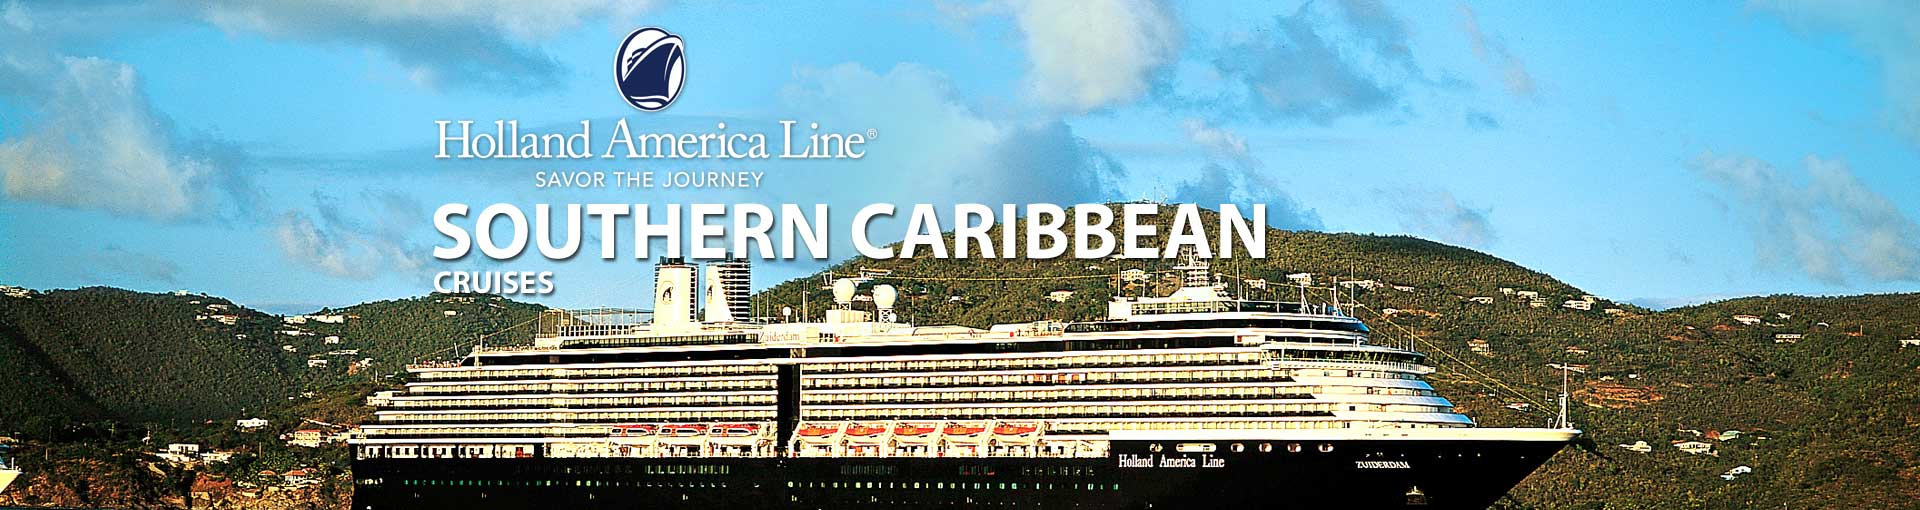 Holland America Southern Caribbean Cruises